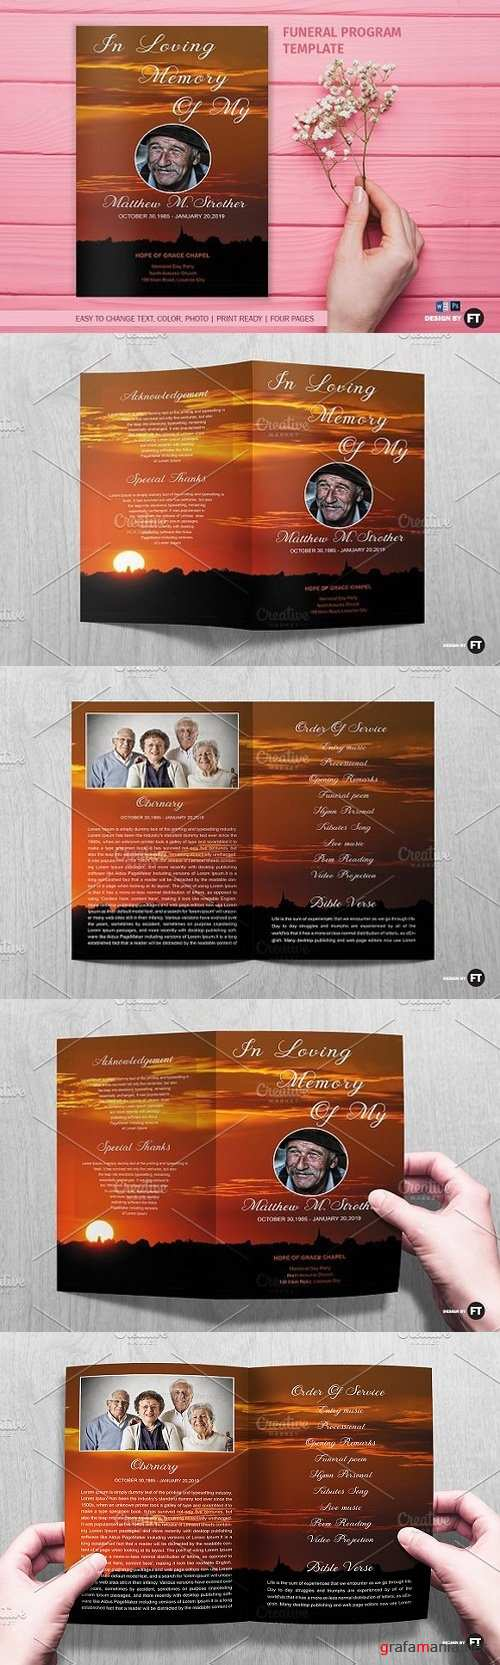 Funeral Program Template / Sunset 1461932